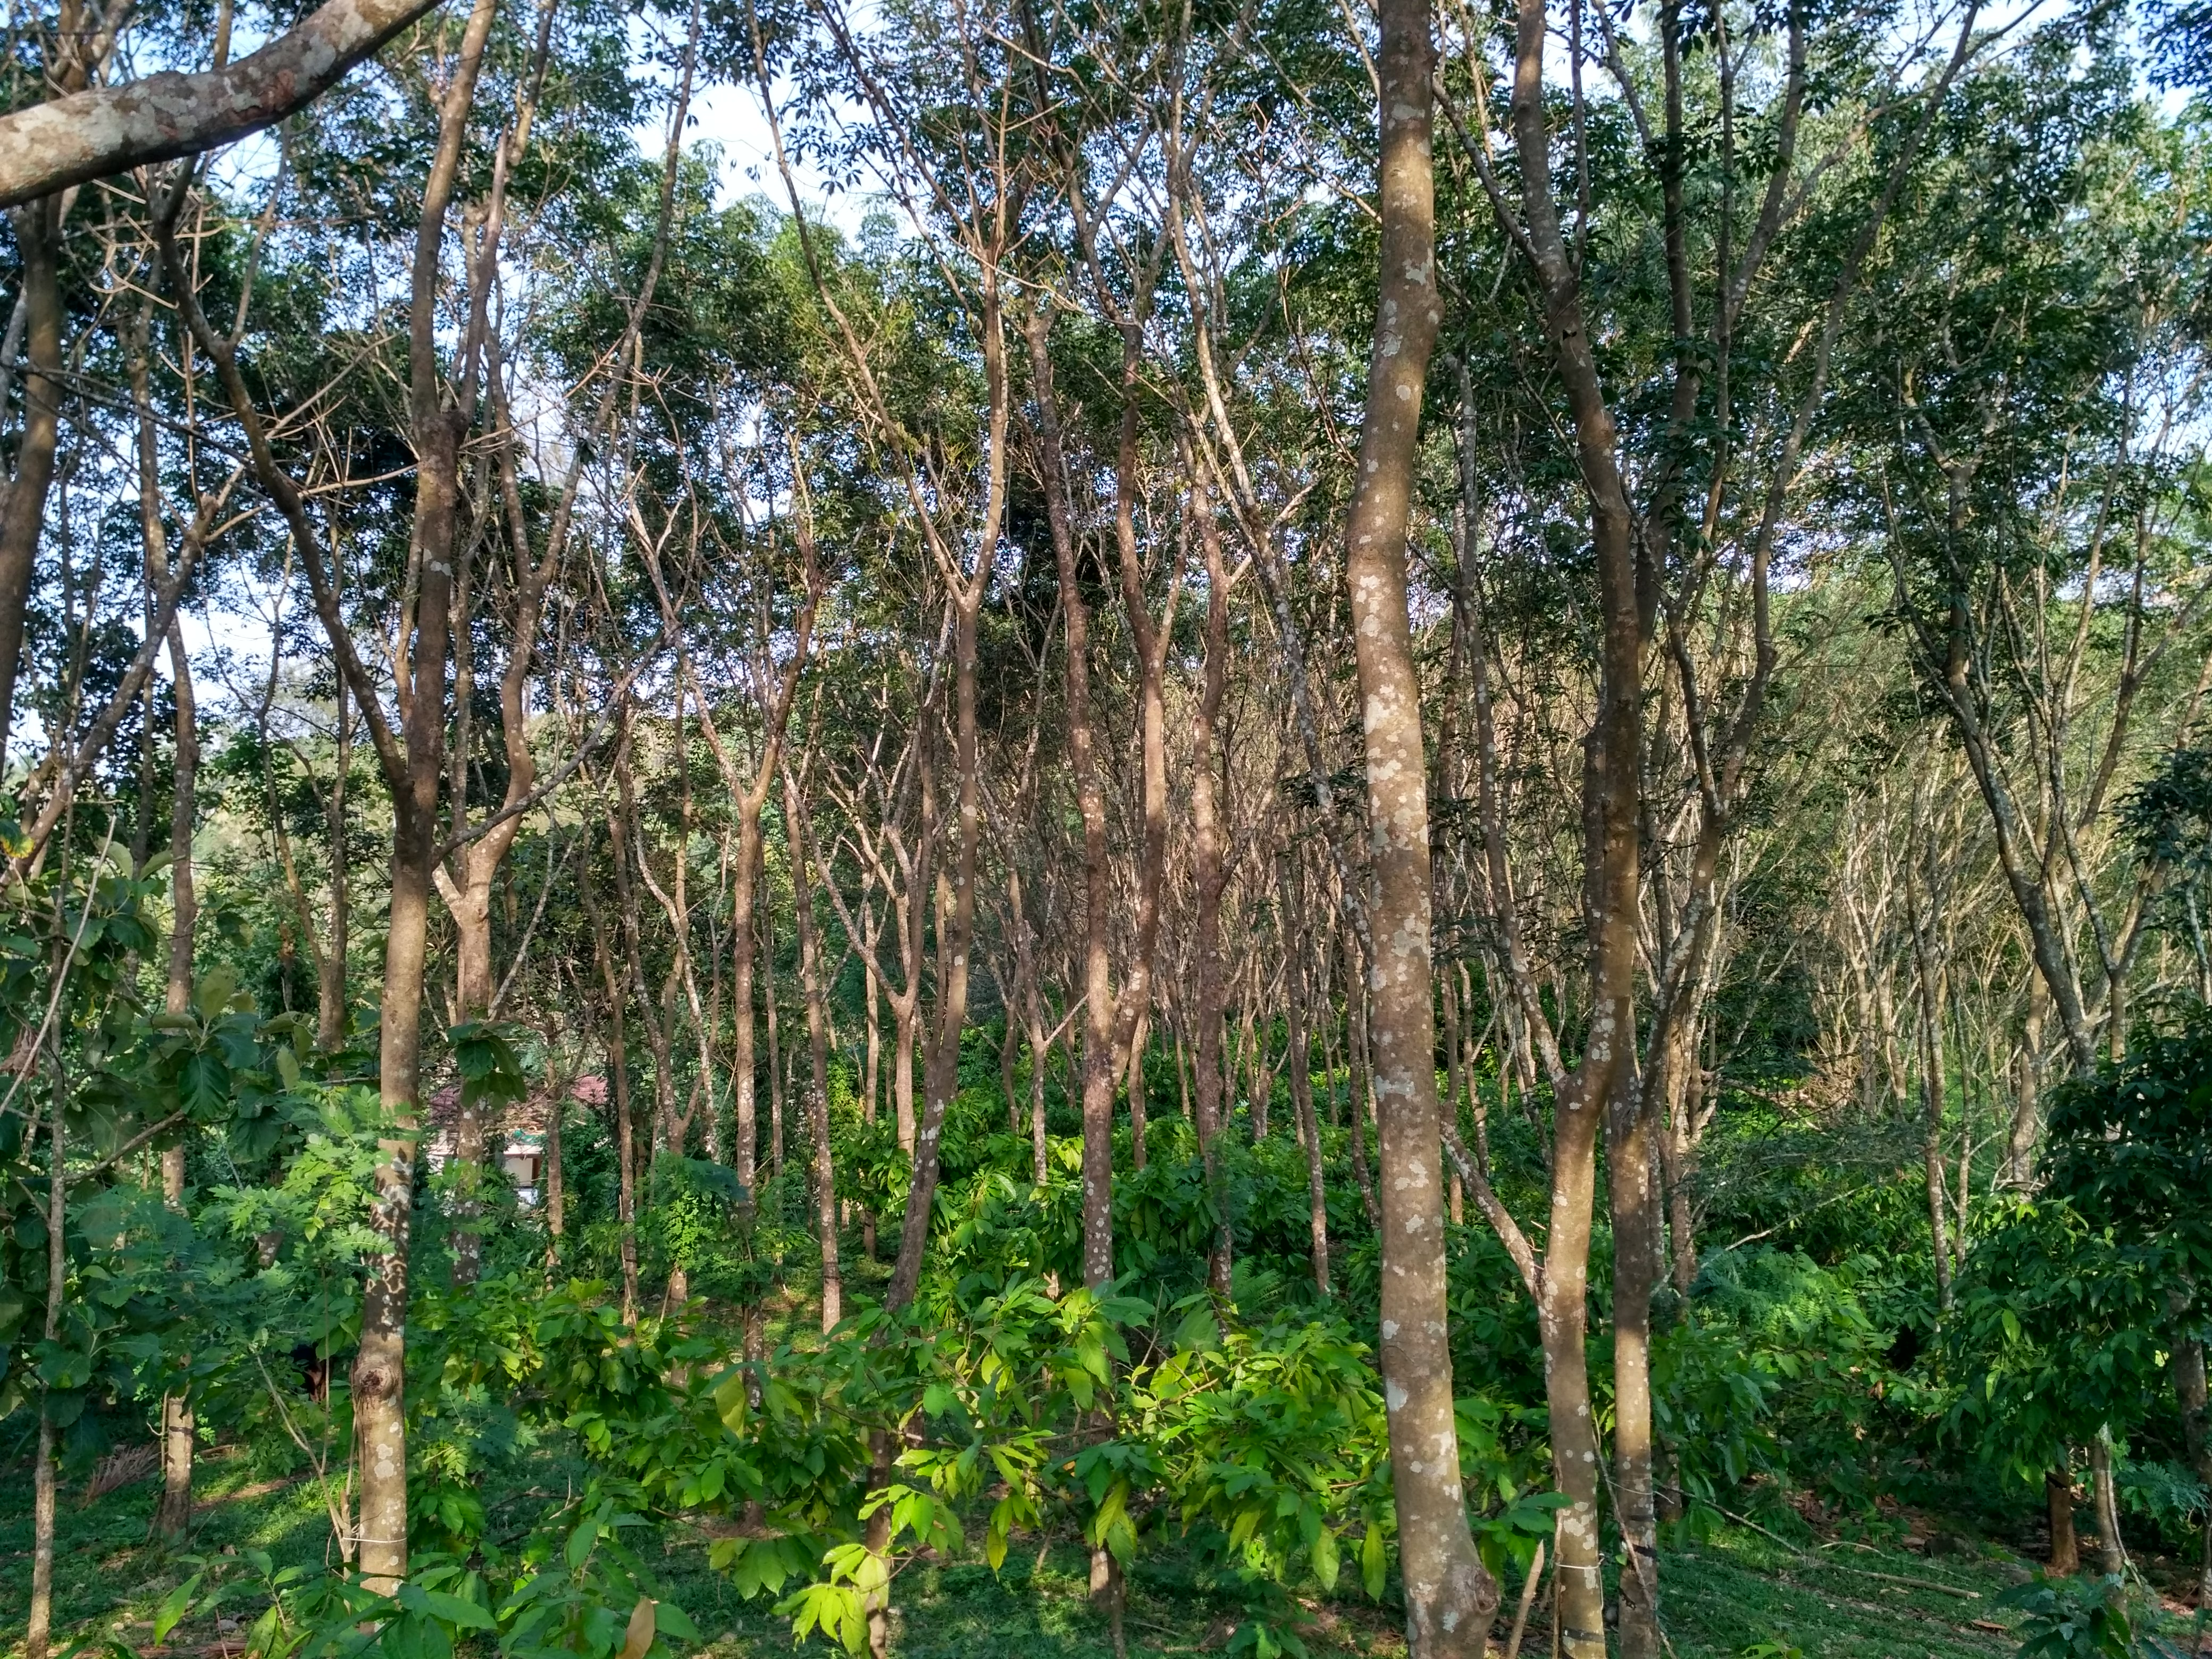 Multi layer farming technology in rubber plantations